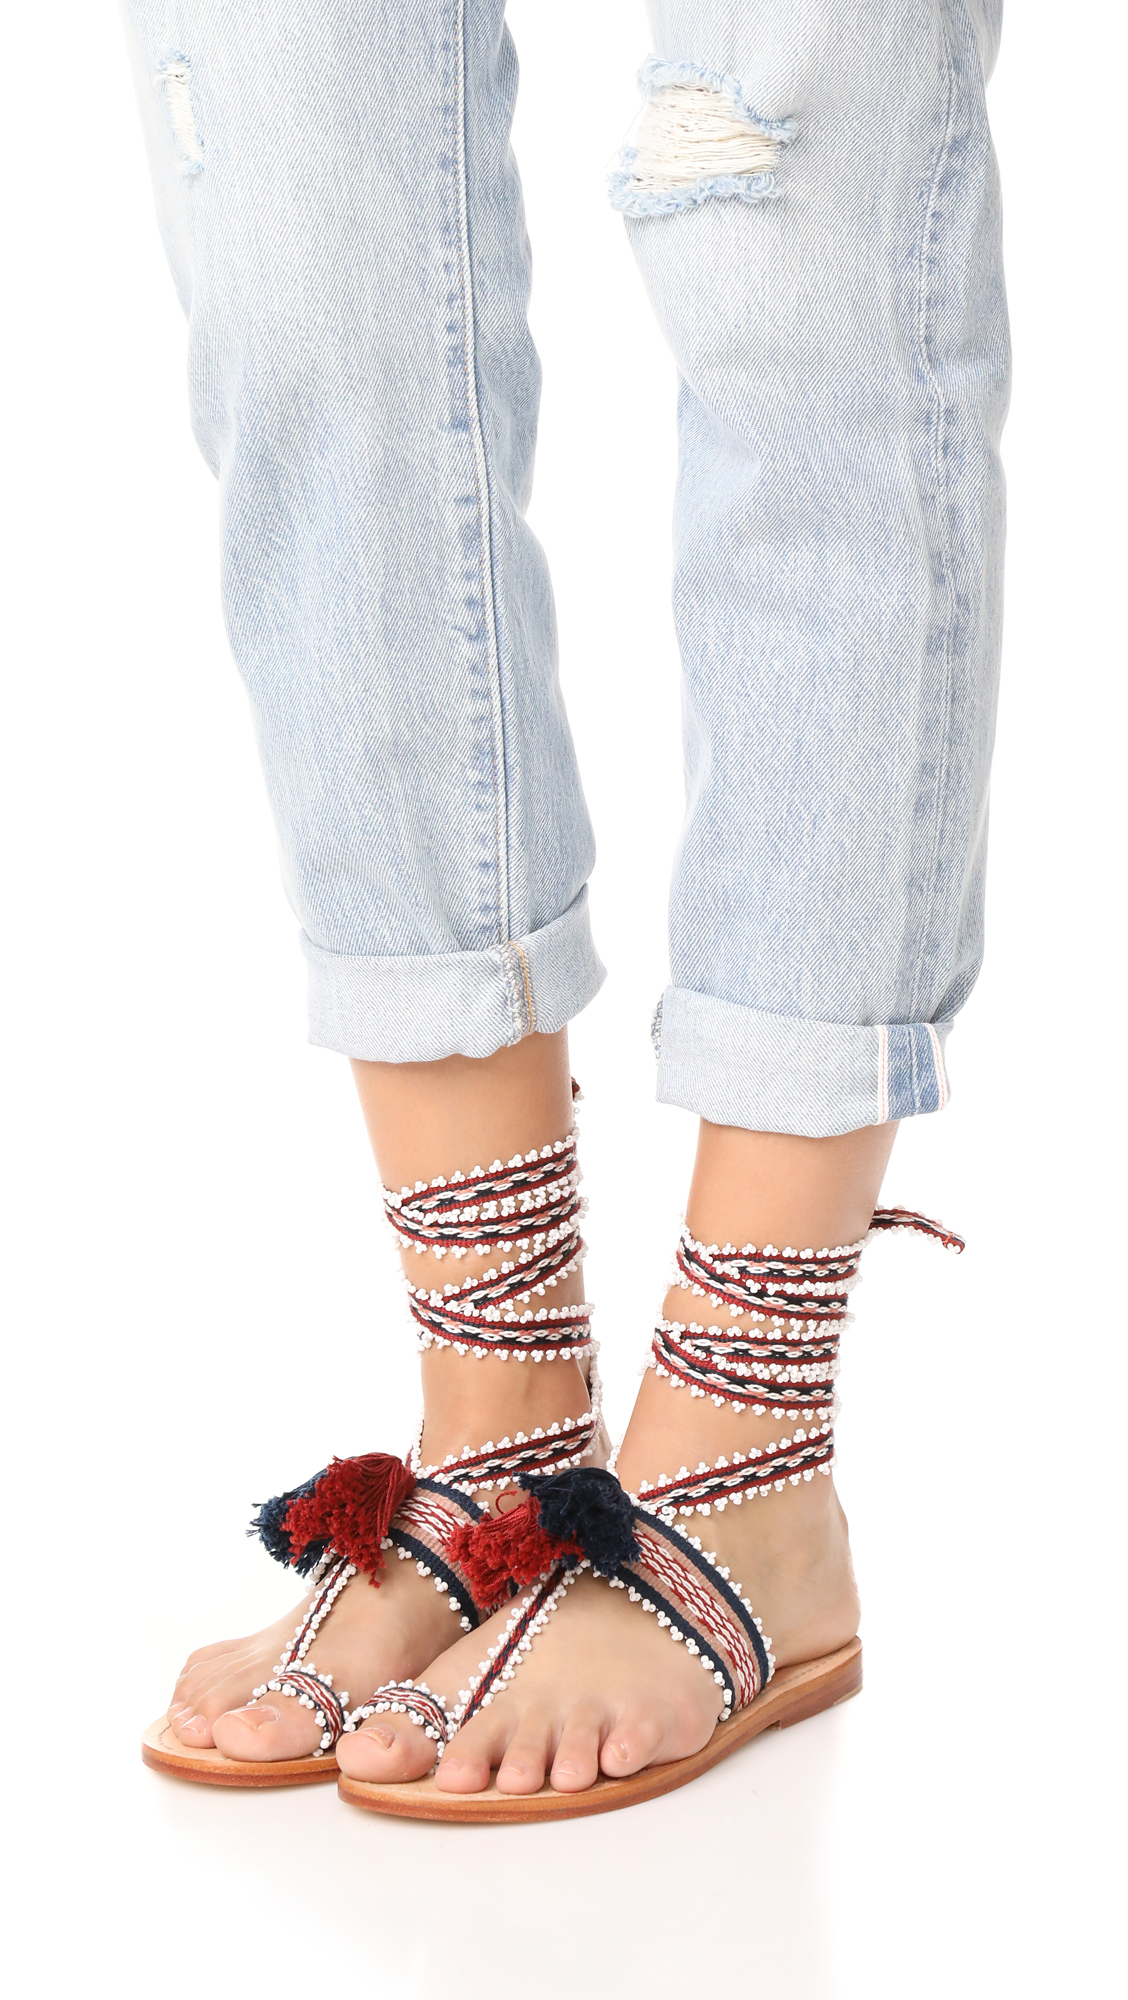 Ulla Johnson Zandra Embroidered Sandals free shipping hot sale outlet 2014 new professional sale online for sale cheap price buy cheap get to buy LuKhYSn7